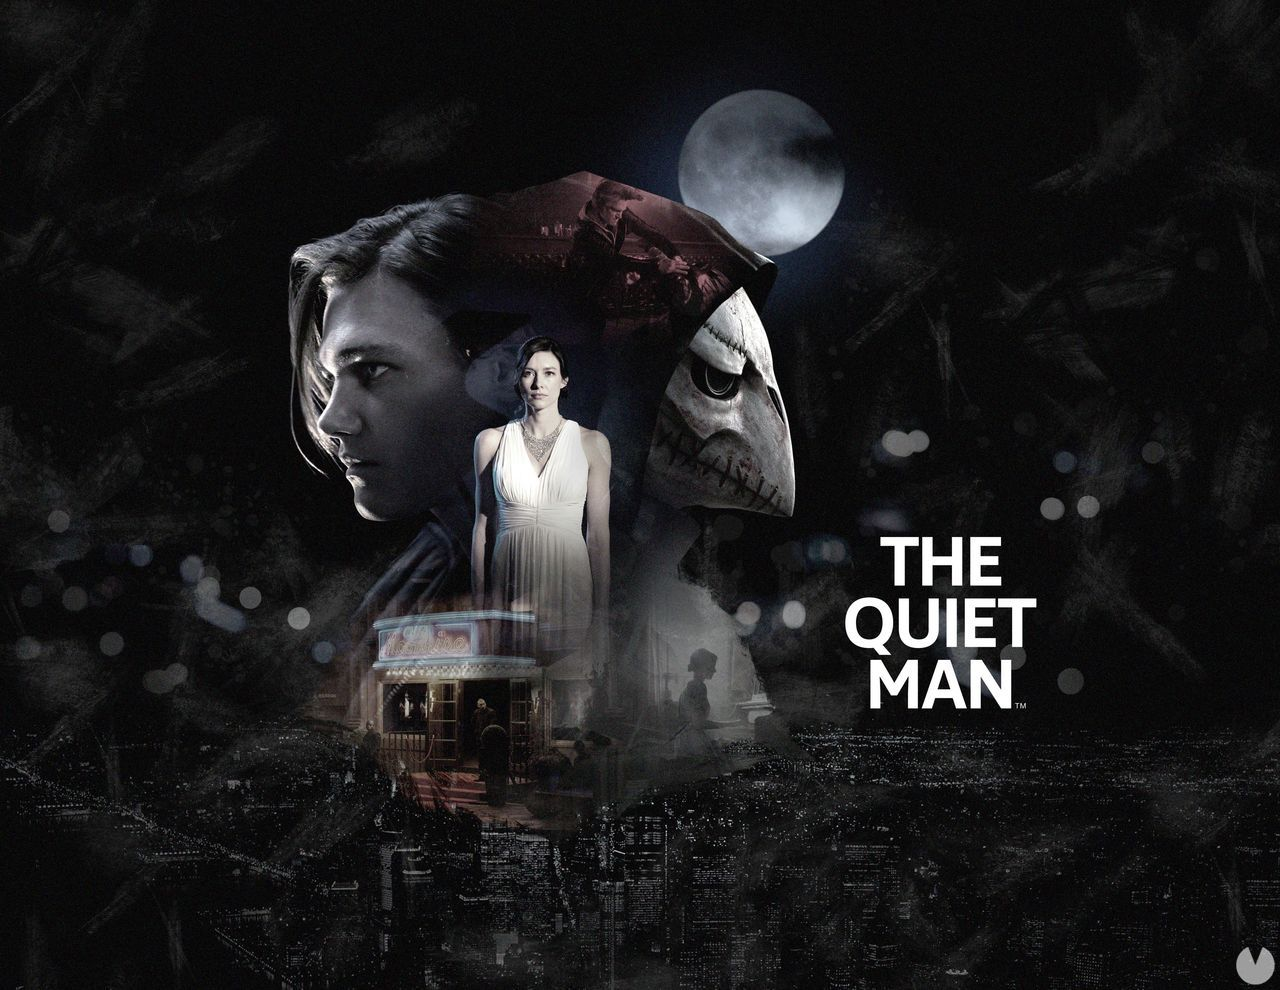 The Quiet Man will have sounds and voices in your second item